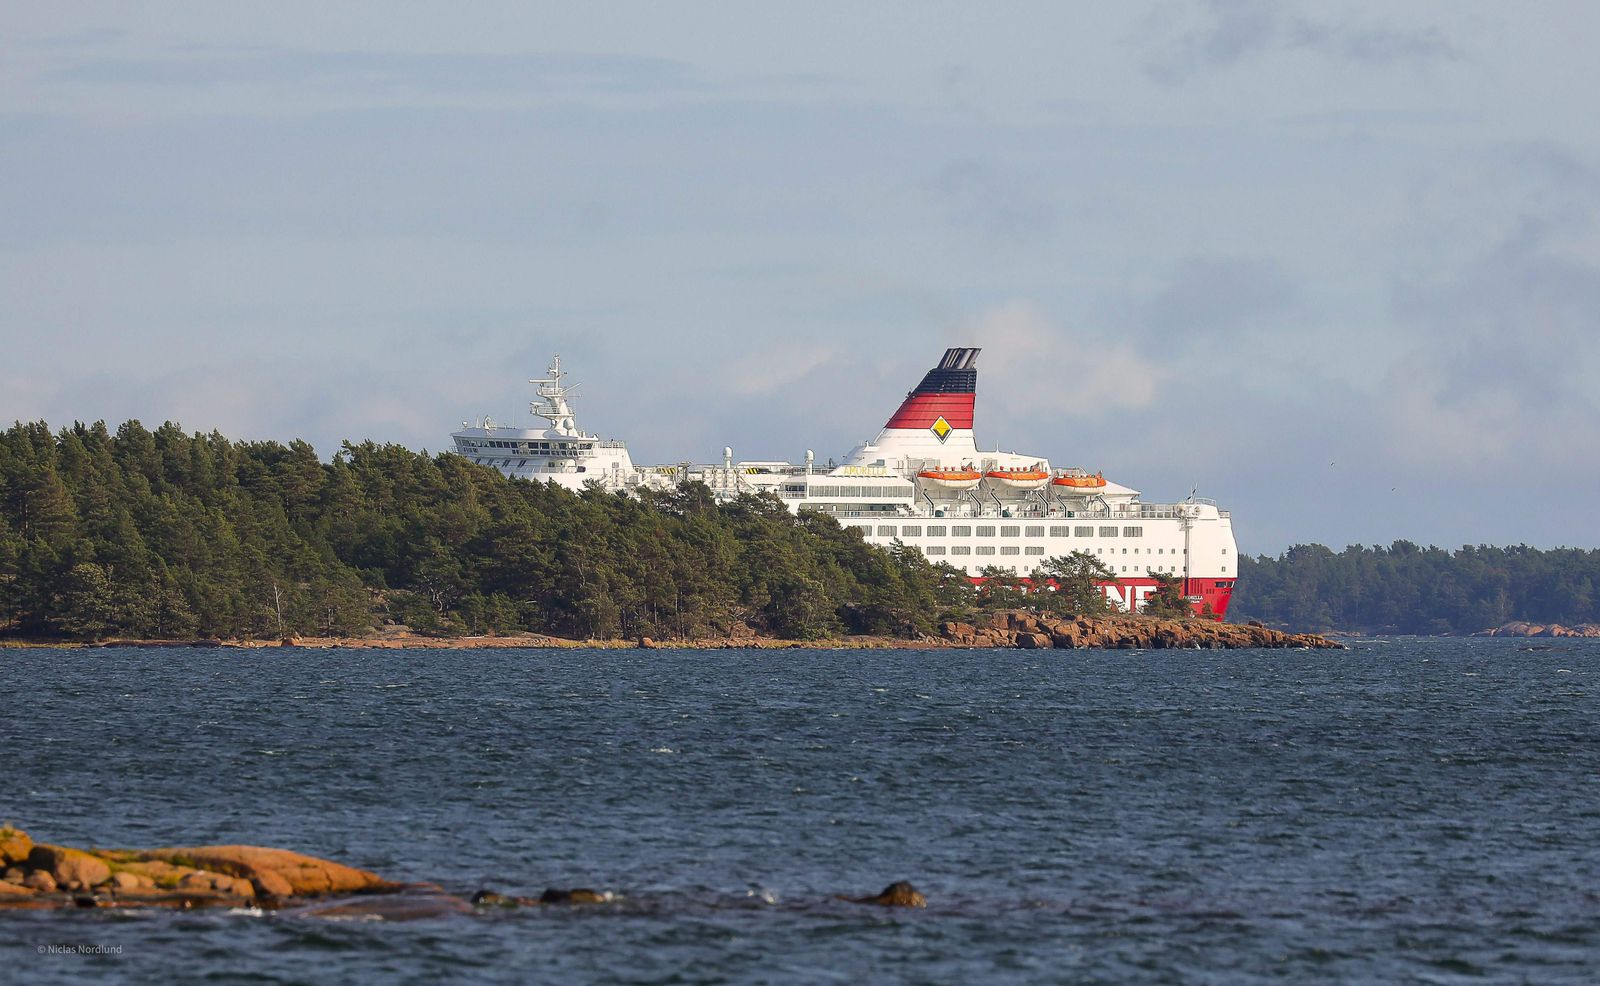 FINLAND-CRUISE-SHIP-ACCIDENT